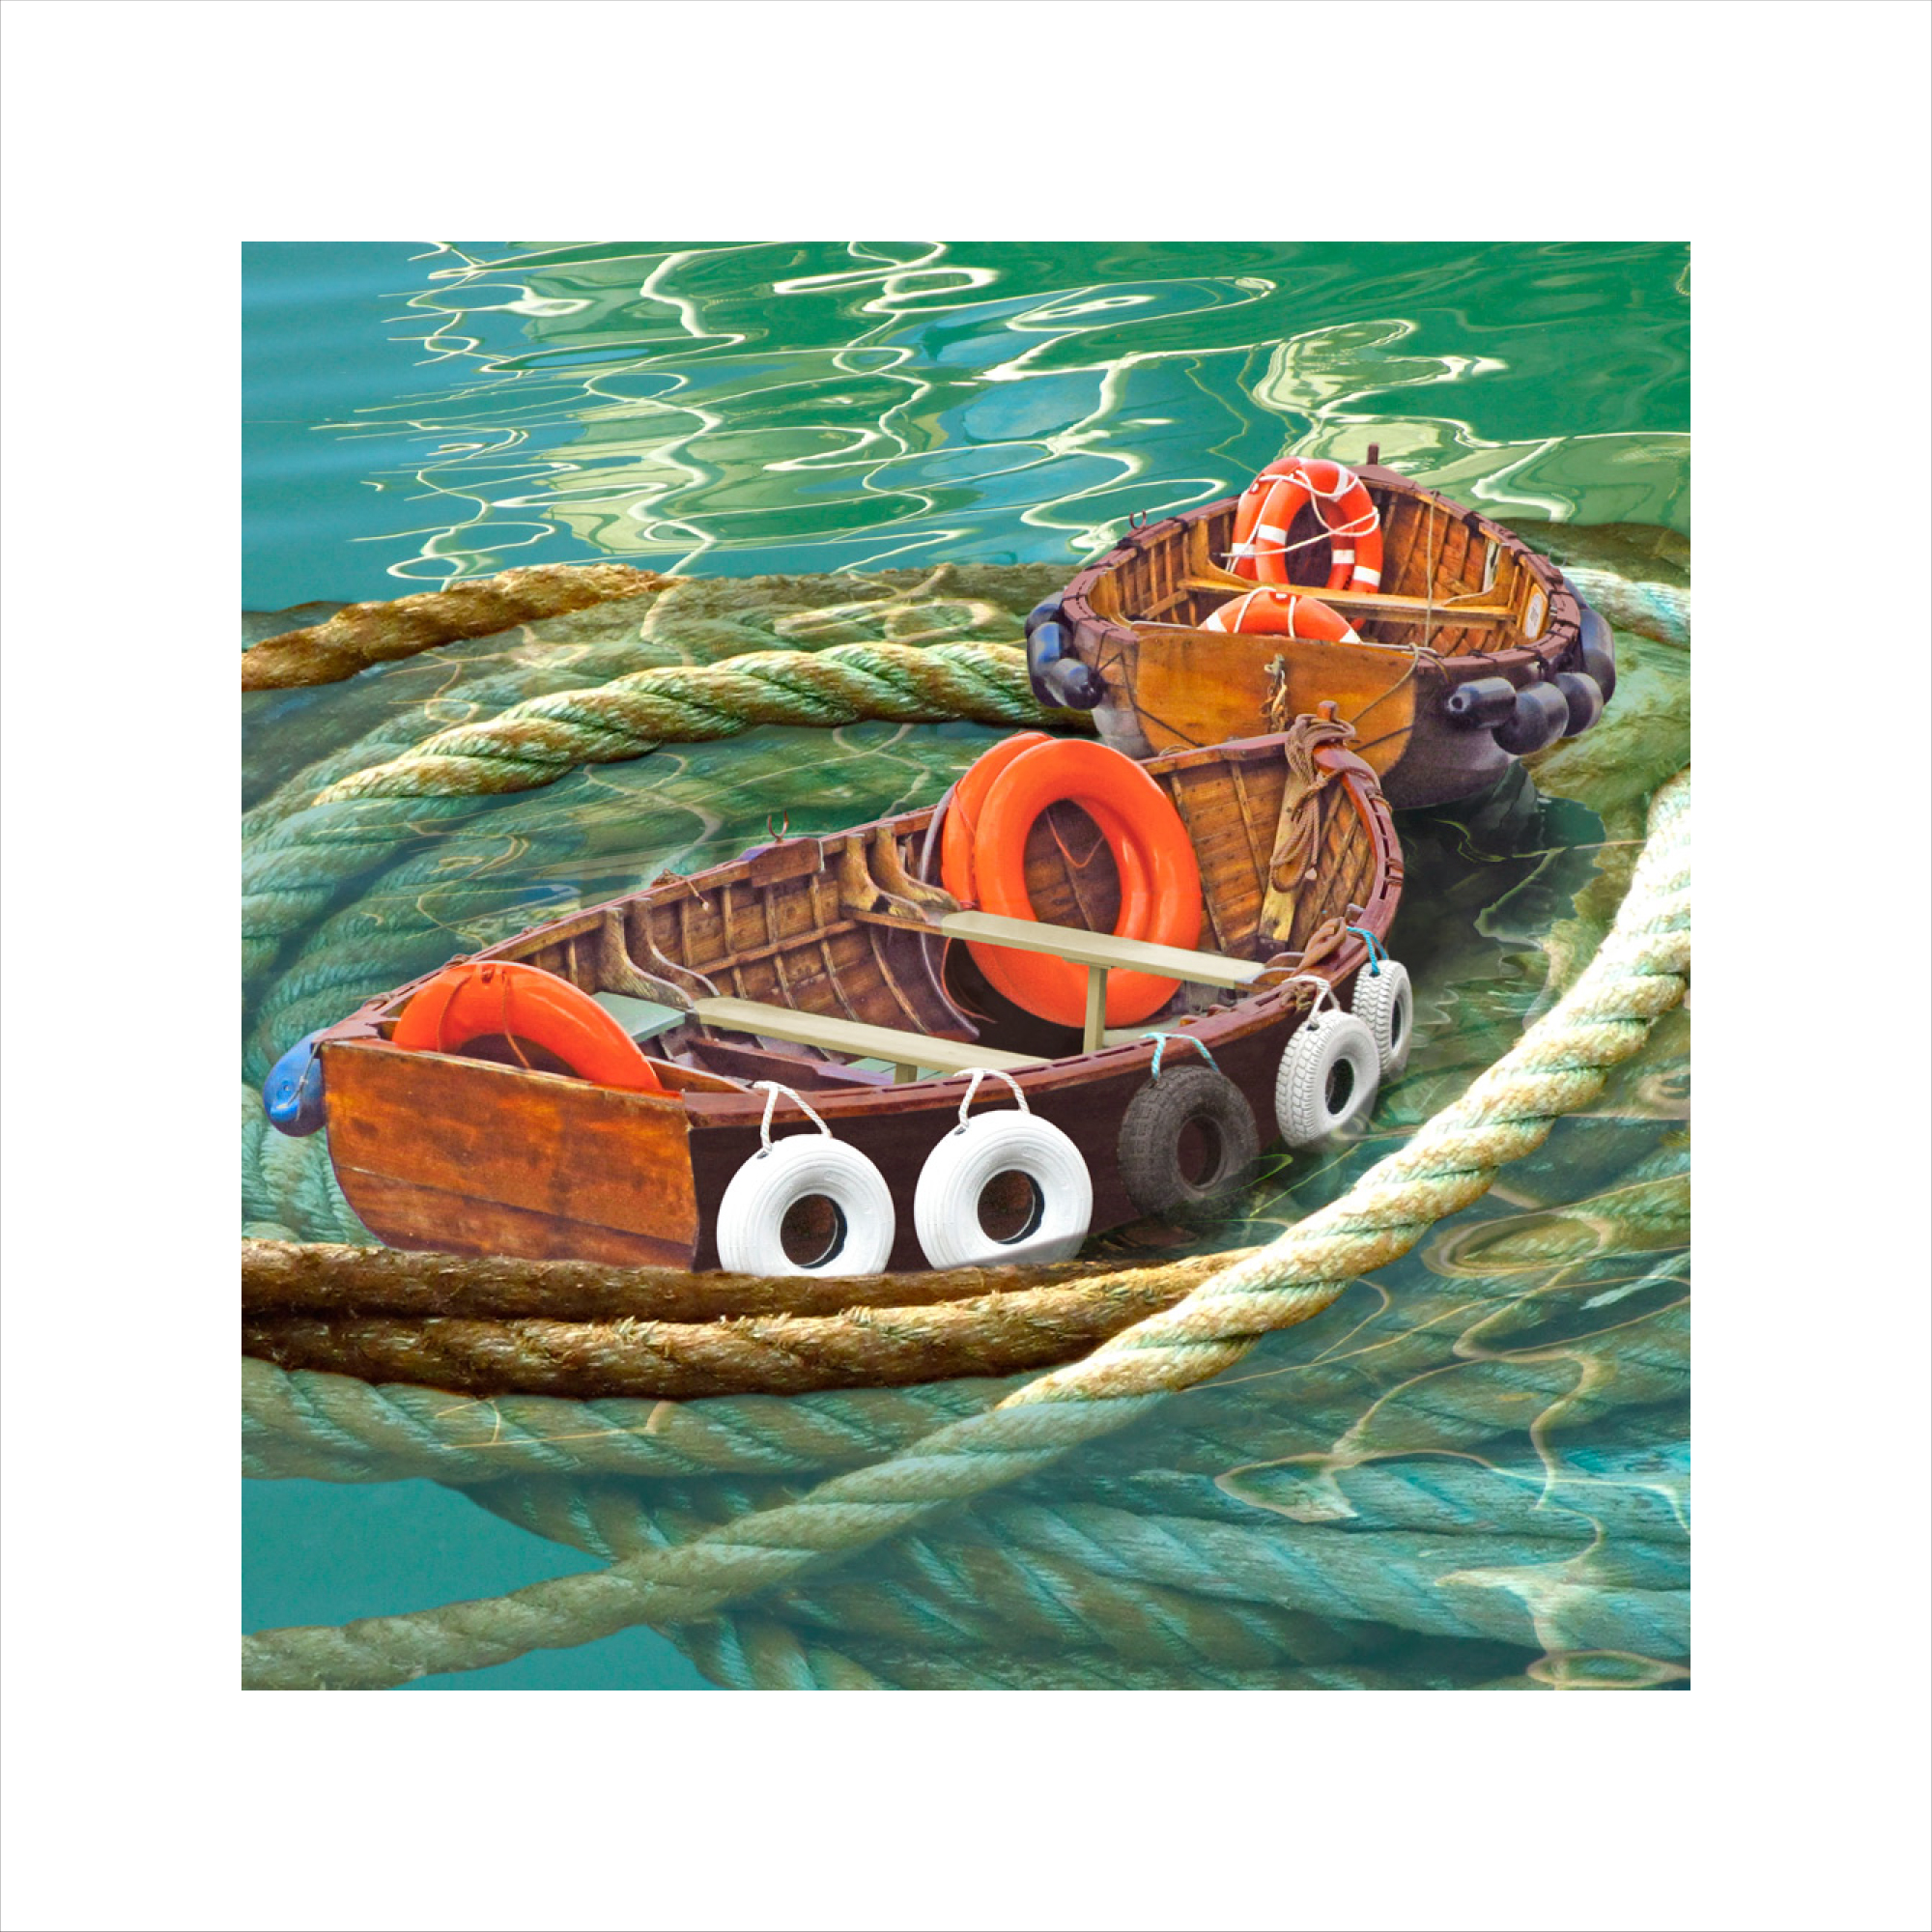 Claire Gill, digital photomontage, Limited edition print, Fine art print, collect art, seascape 29, coastal art, Whirlpool, boats, Weymouth